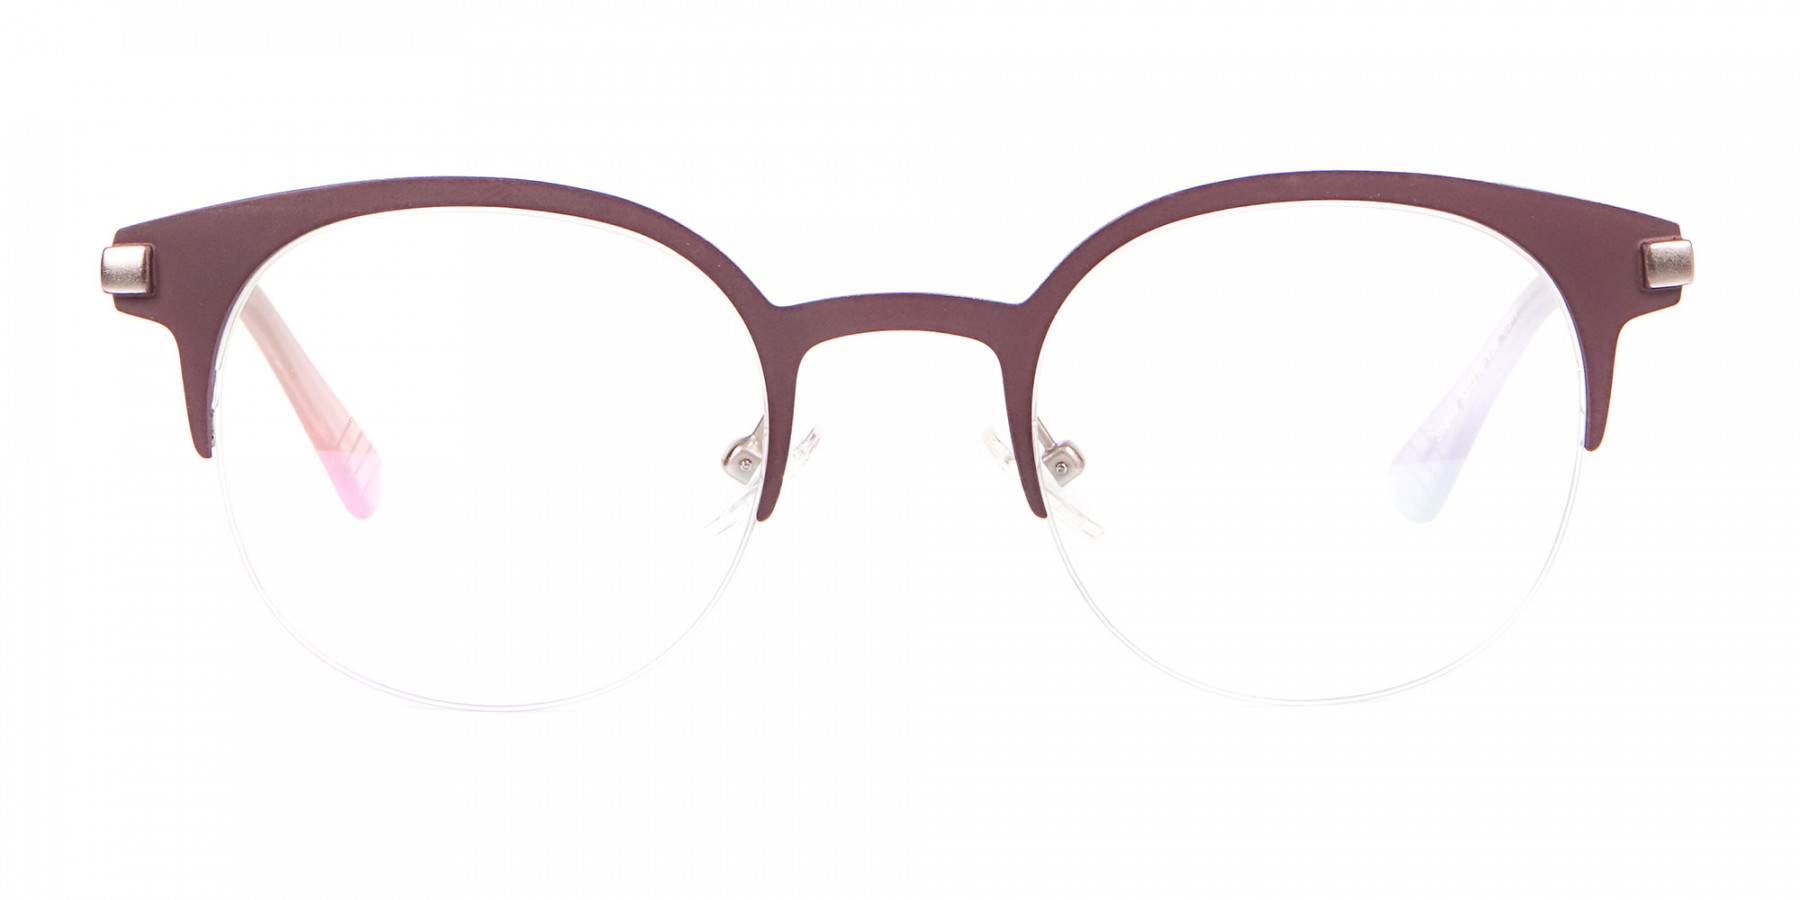 Woman 50's Retro Round Half-Rims Glasses UK-1